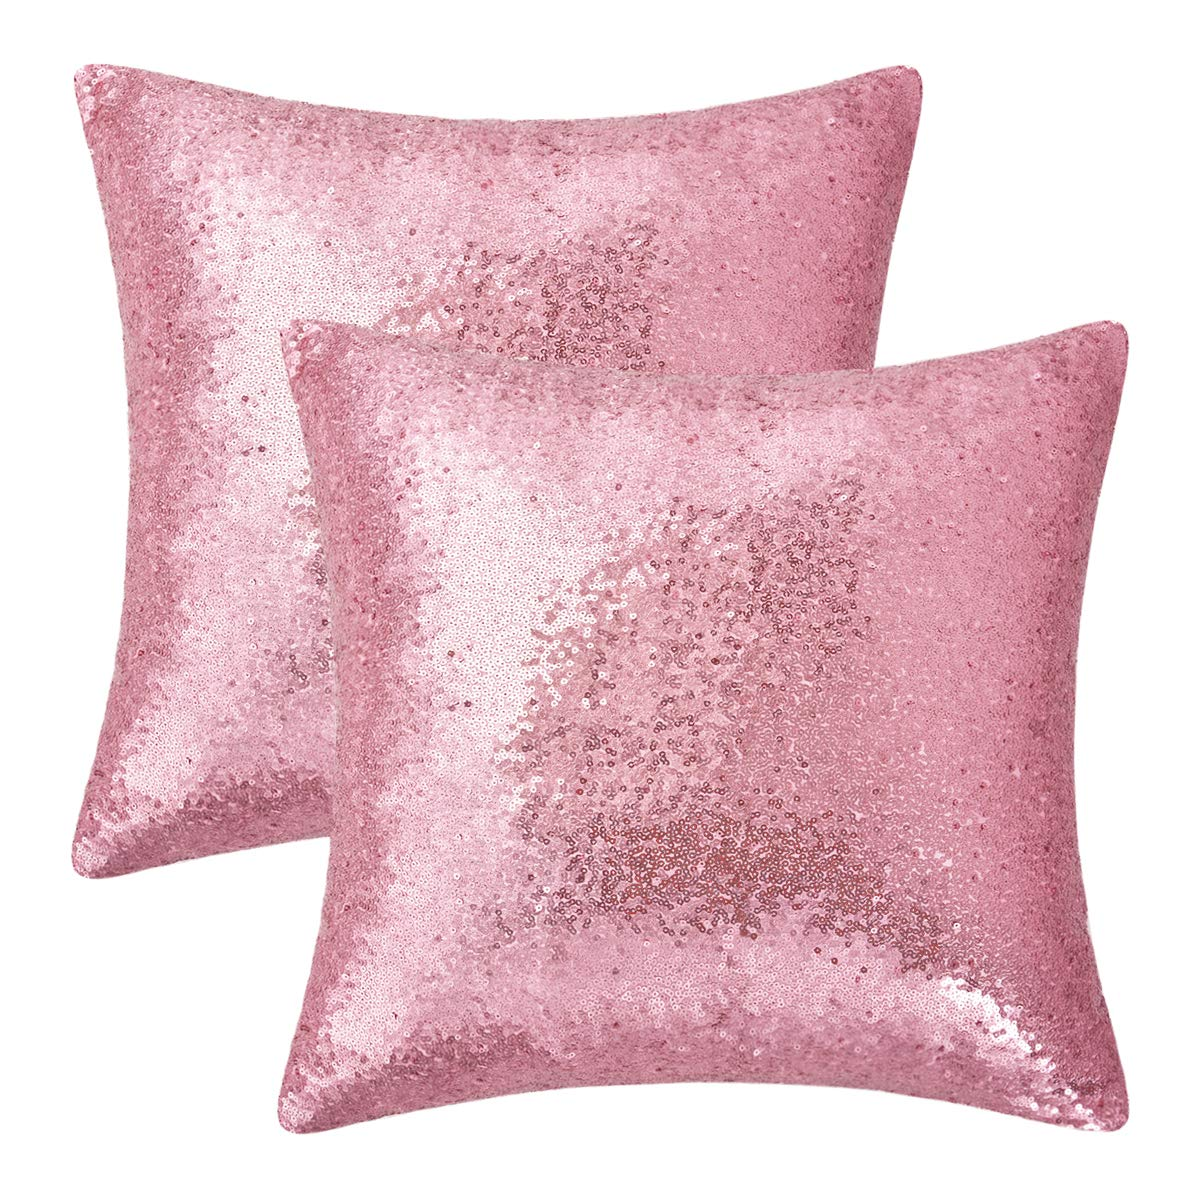 BLEUM CADE Set of 2 Rose Gold Pillow Covers Sparkling Sequins Pillow Covers Mermaid Sequin Throw Pillow Covers Cushion Covers Pillowcases Party Holiday Decoration 18 x 18 Inch